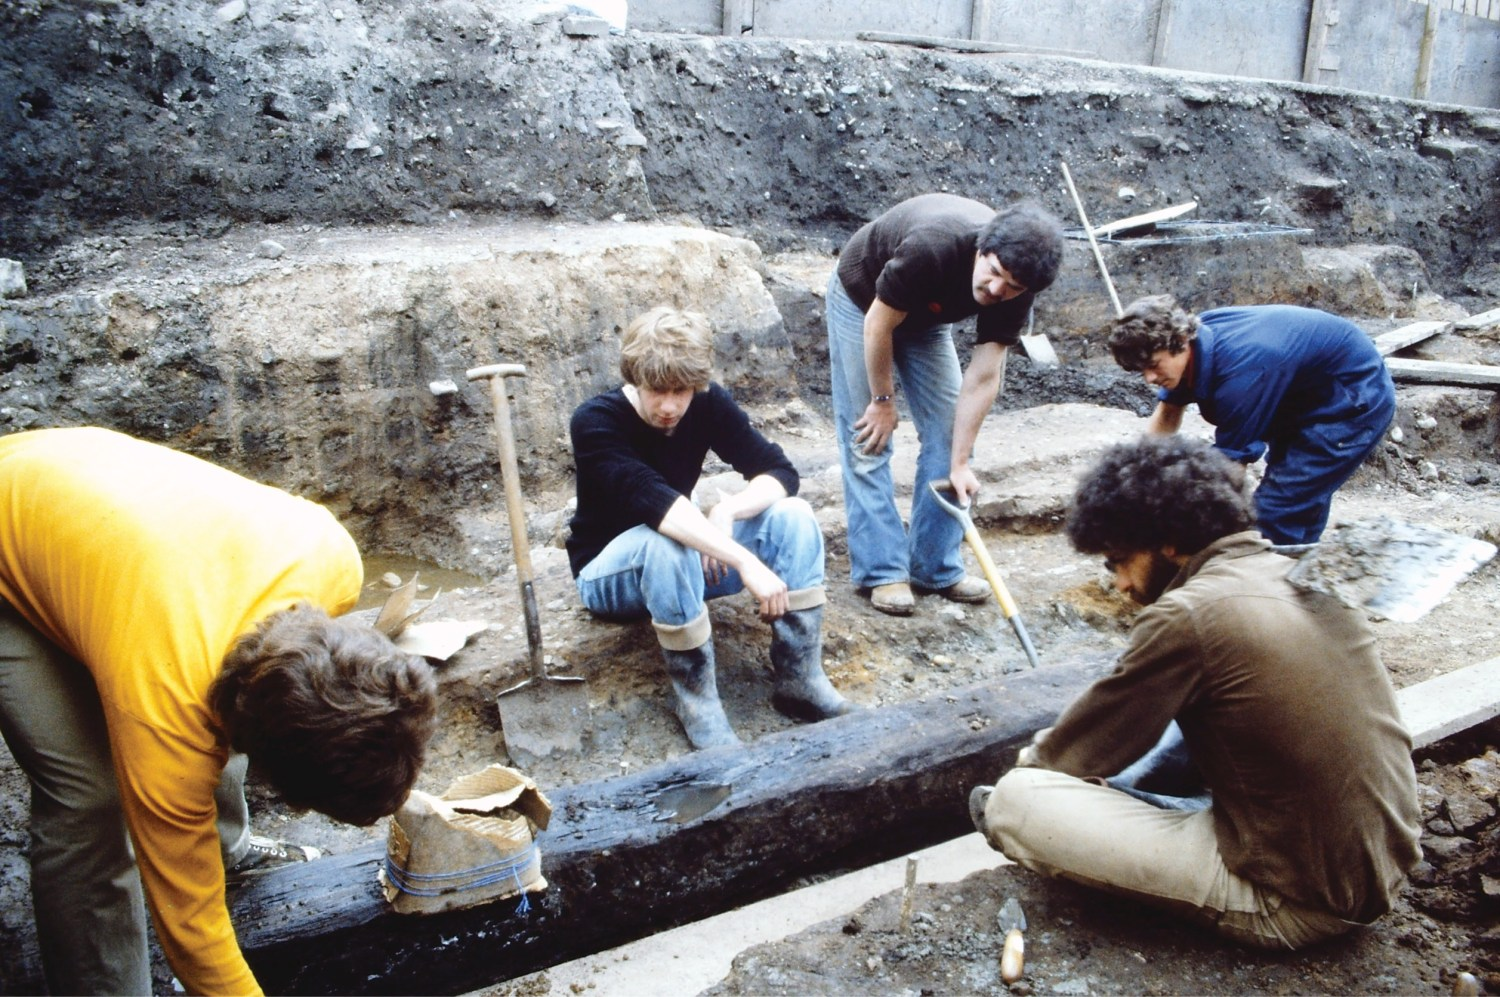 above Between 1978 and 1982, excavation of the north Lanes site at Carlisle shed vivid light on the Roman civilian settlement. Here, the team from Carlisle Archaeological Unit is lifting one of the oak base plates belonging to a 2nd-century high-status structure, possibly a mansio.